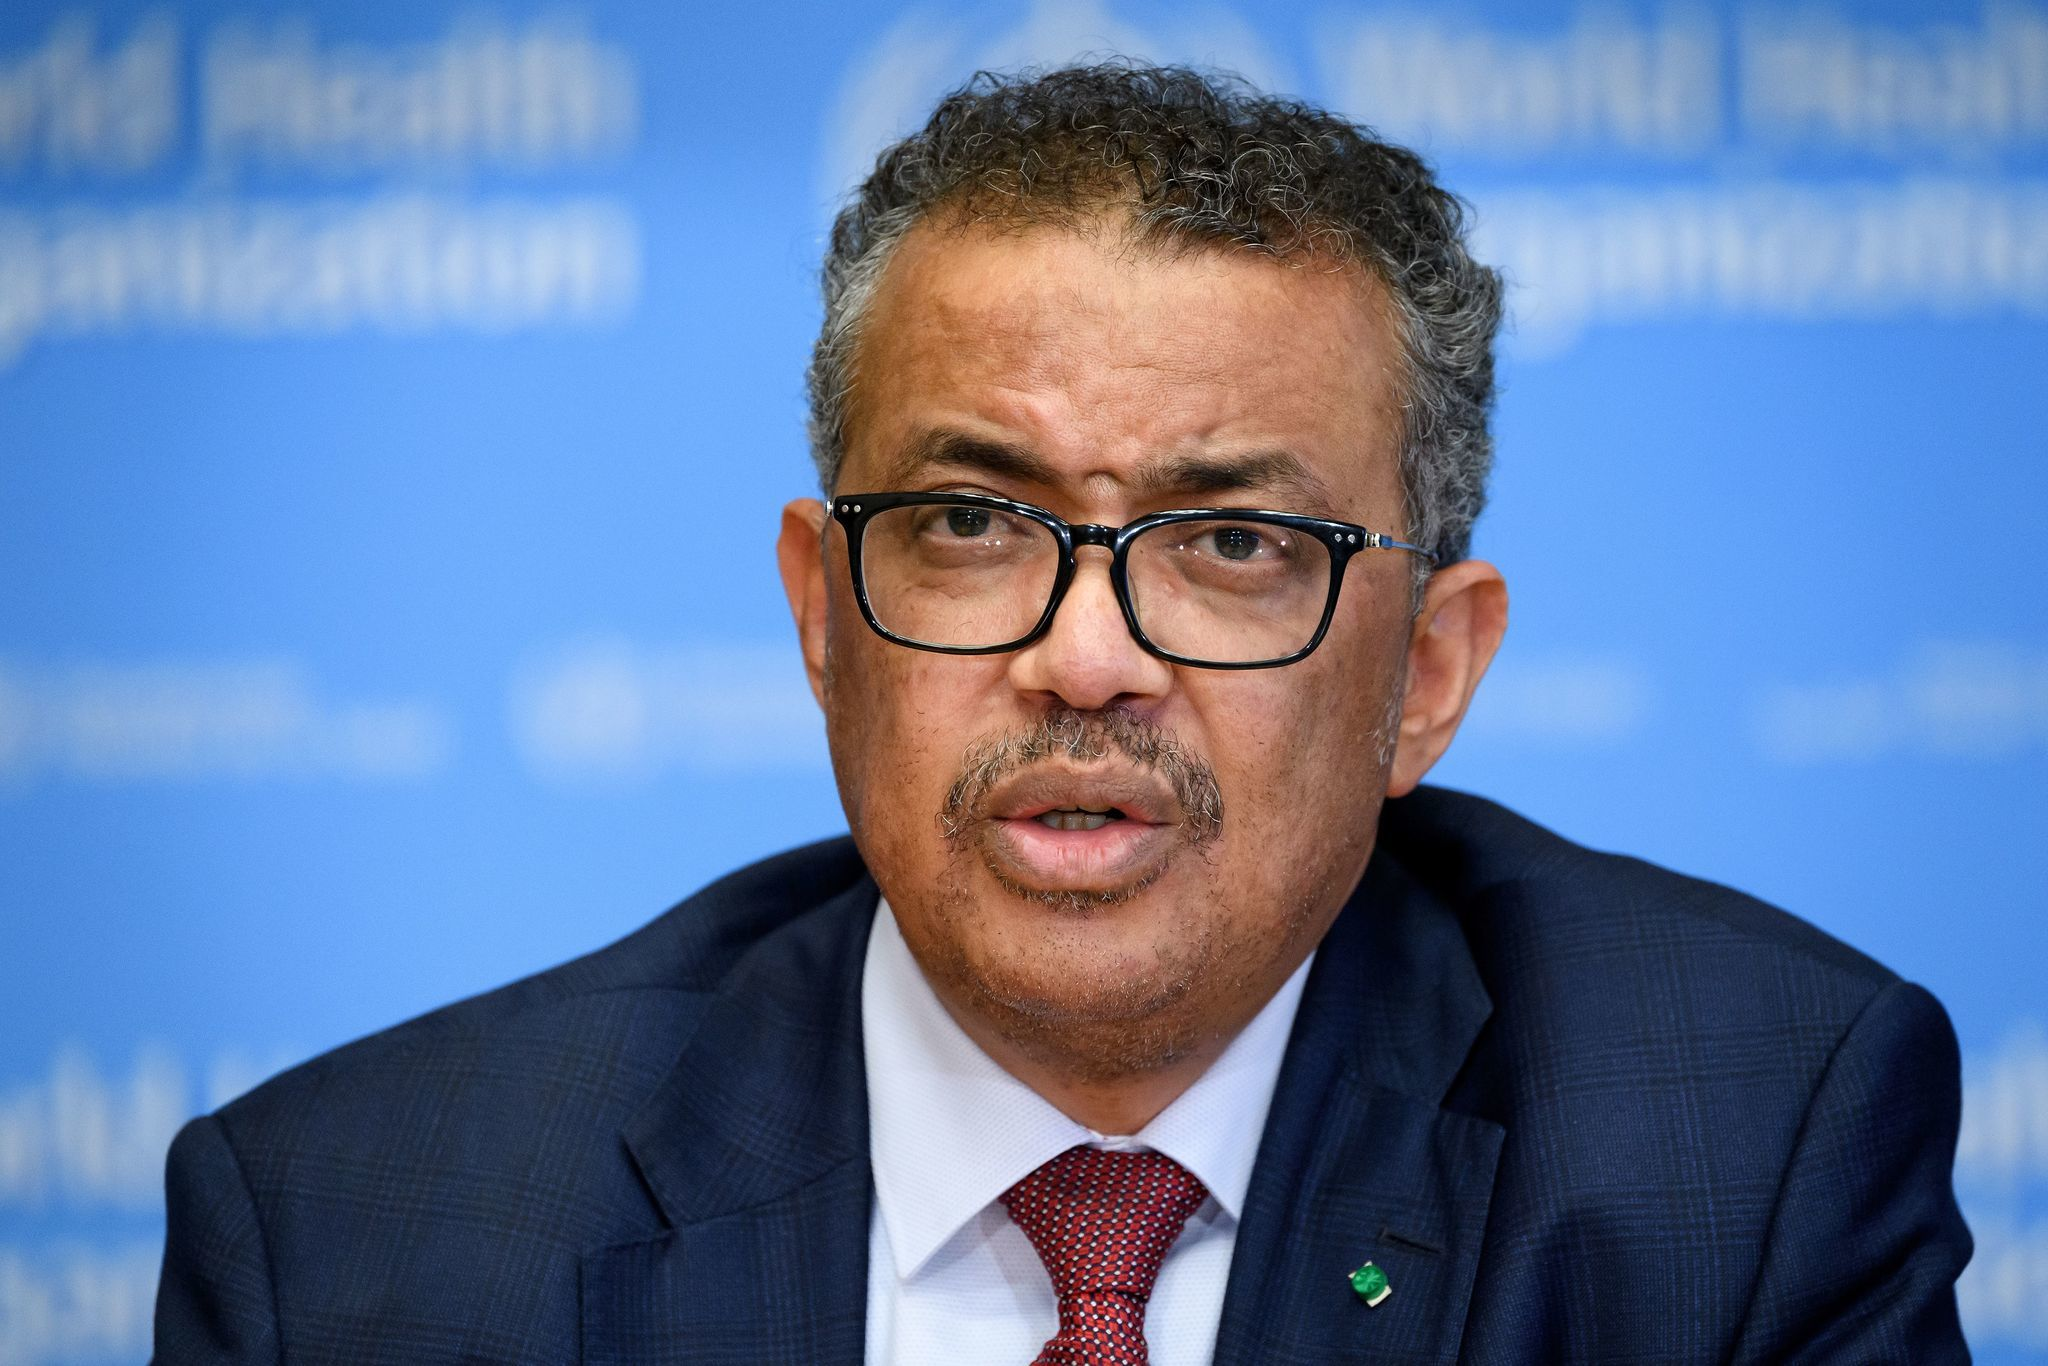 WHO director-general lashes out at French doctors who proposed using African nations as vaccine testing ground